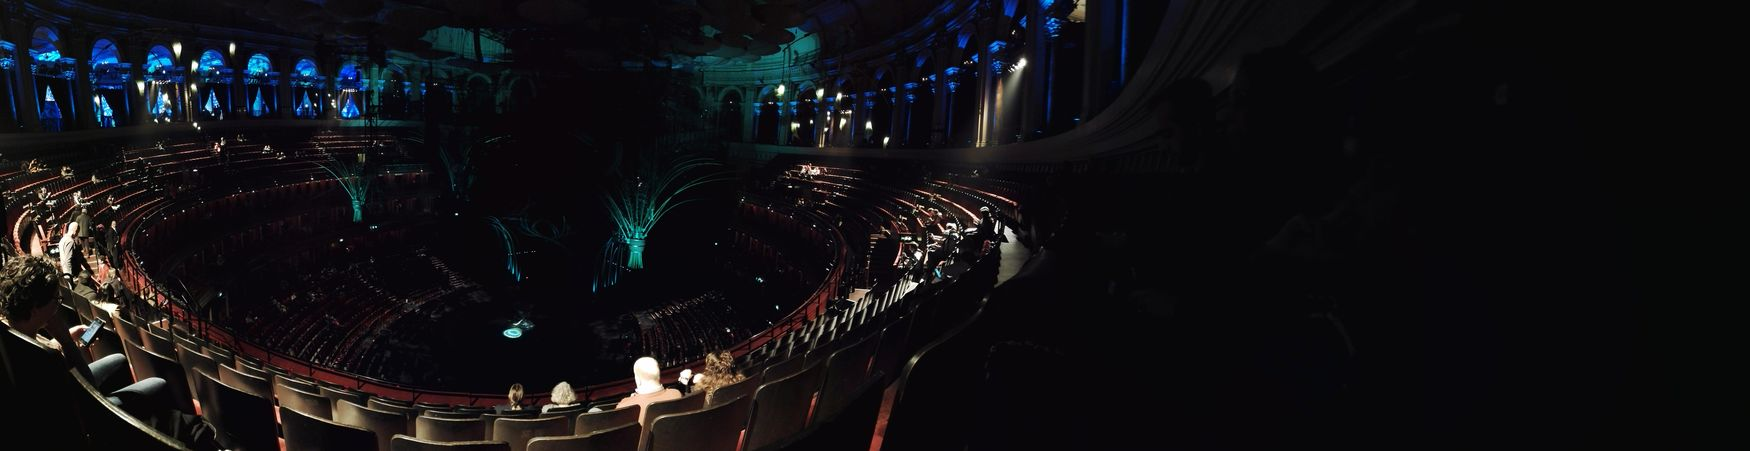 Great View Great Atmosphere Grand Building Wonderful Many People Interior Design Amazing Experience